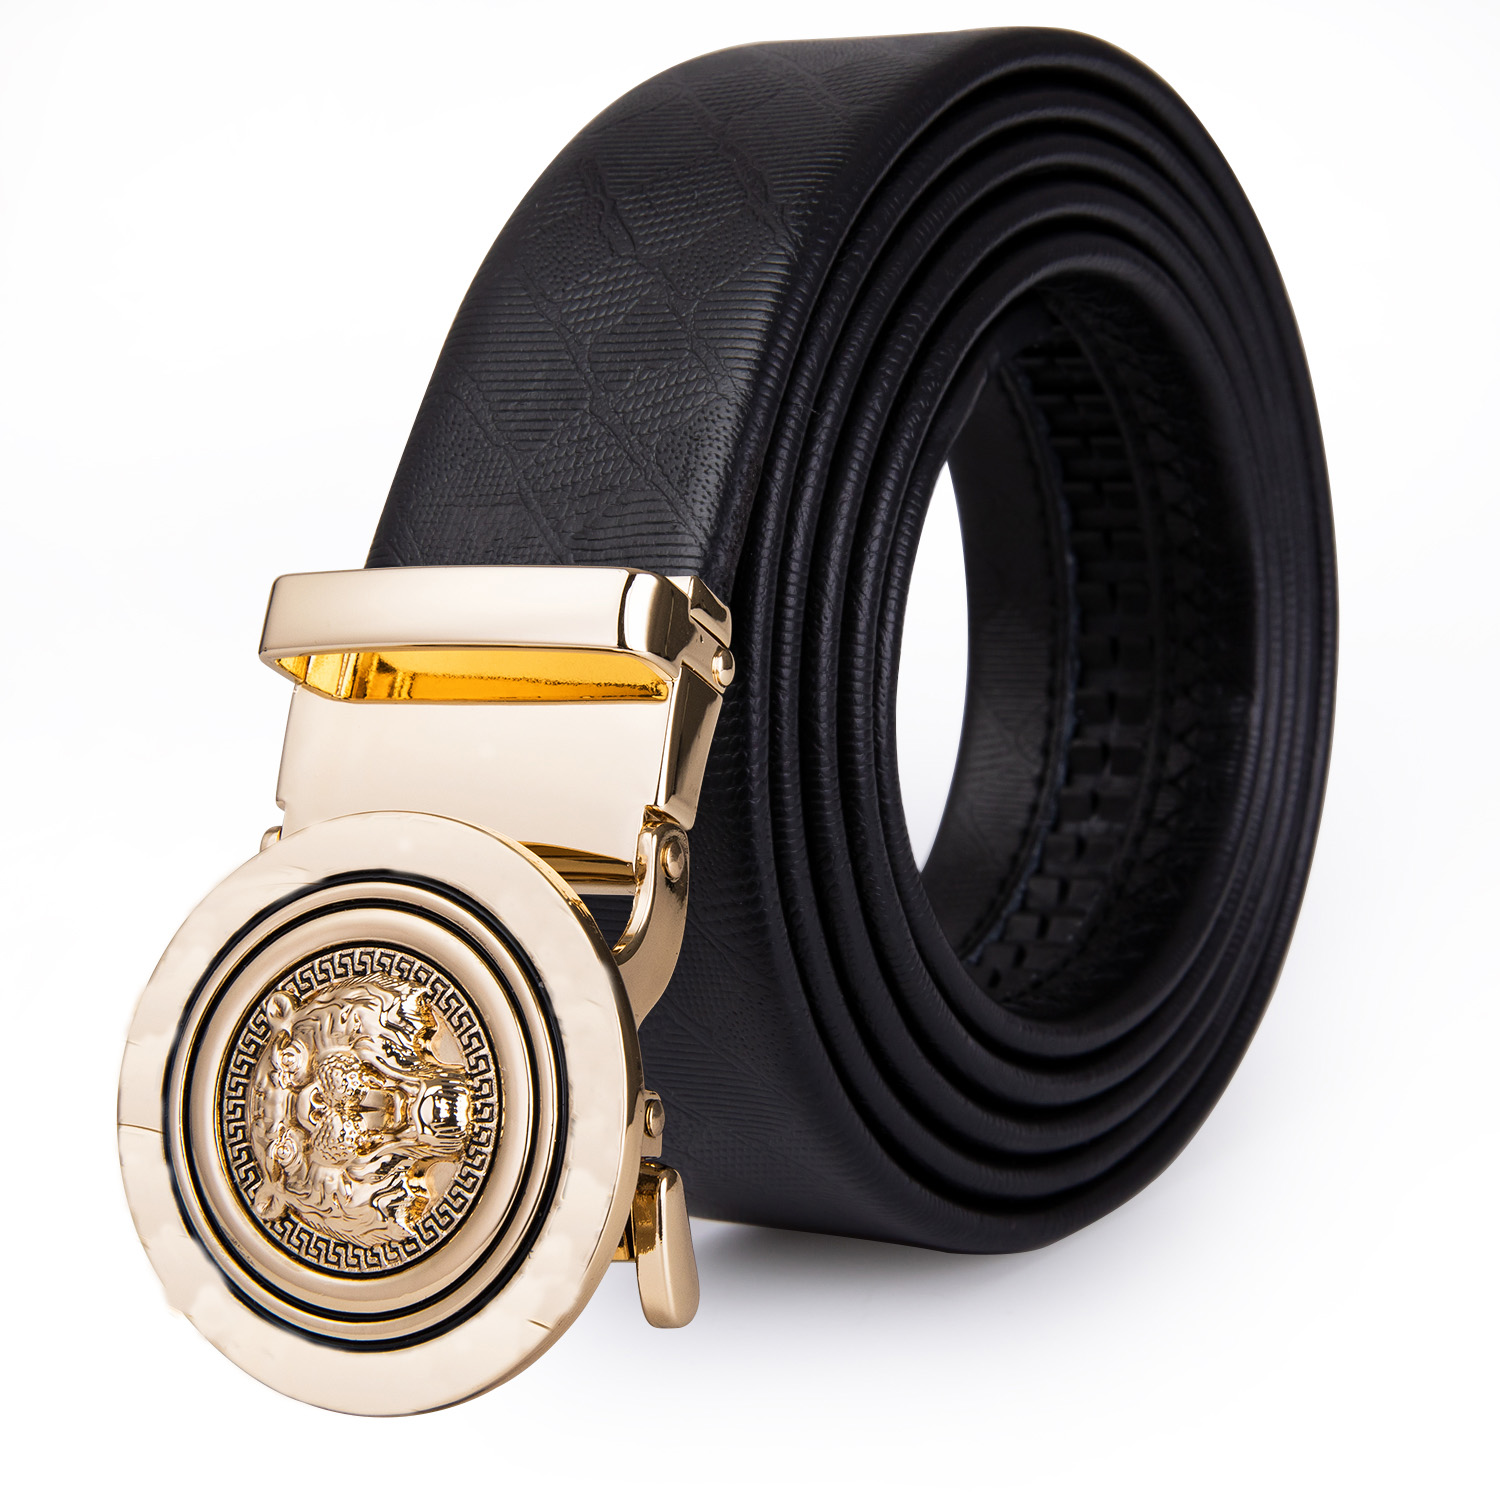 Gold Single Prong Pin Buckles Mens Belts Black Genuine Leather Holes Belts Gift